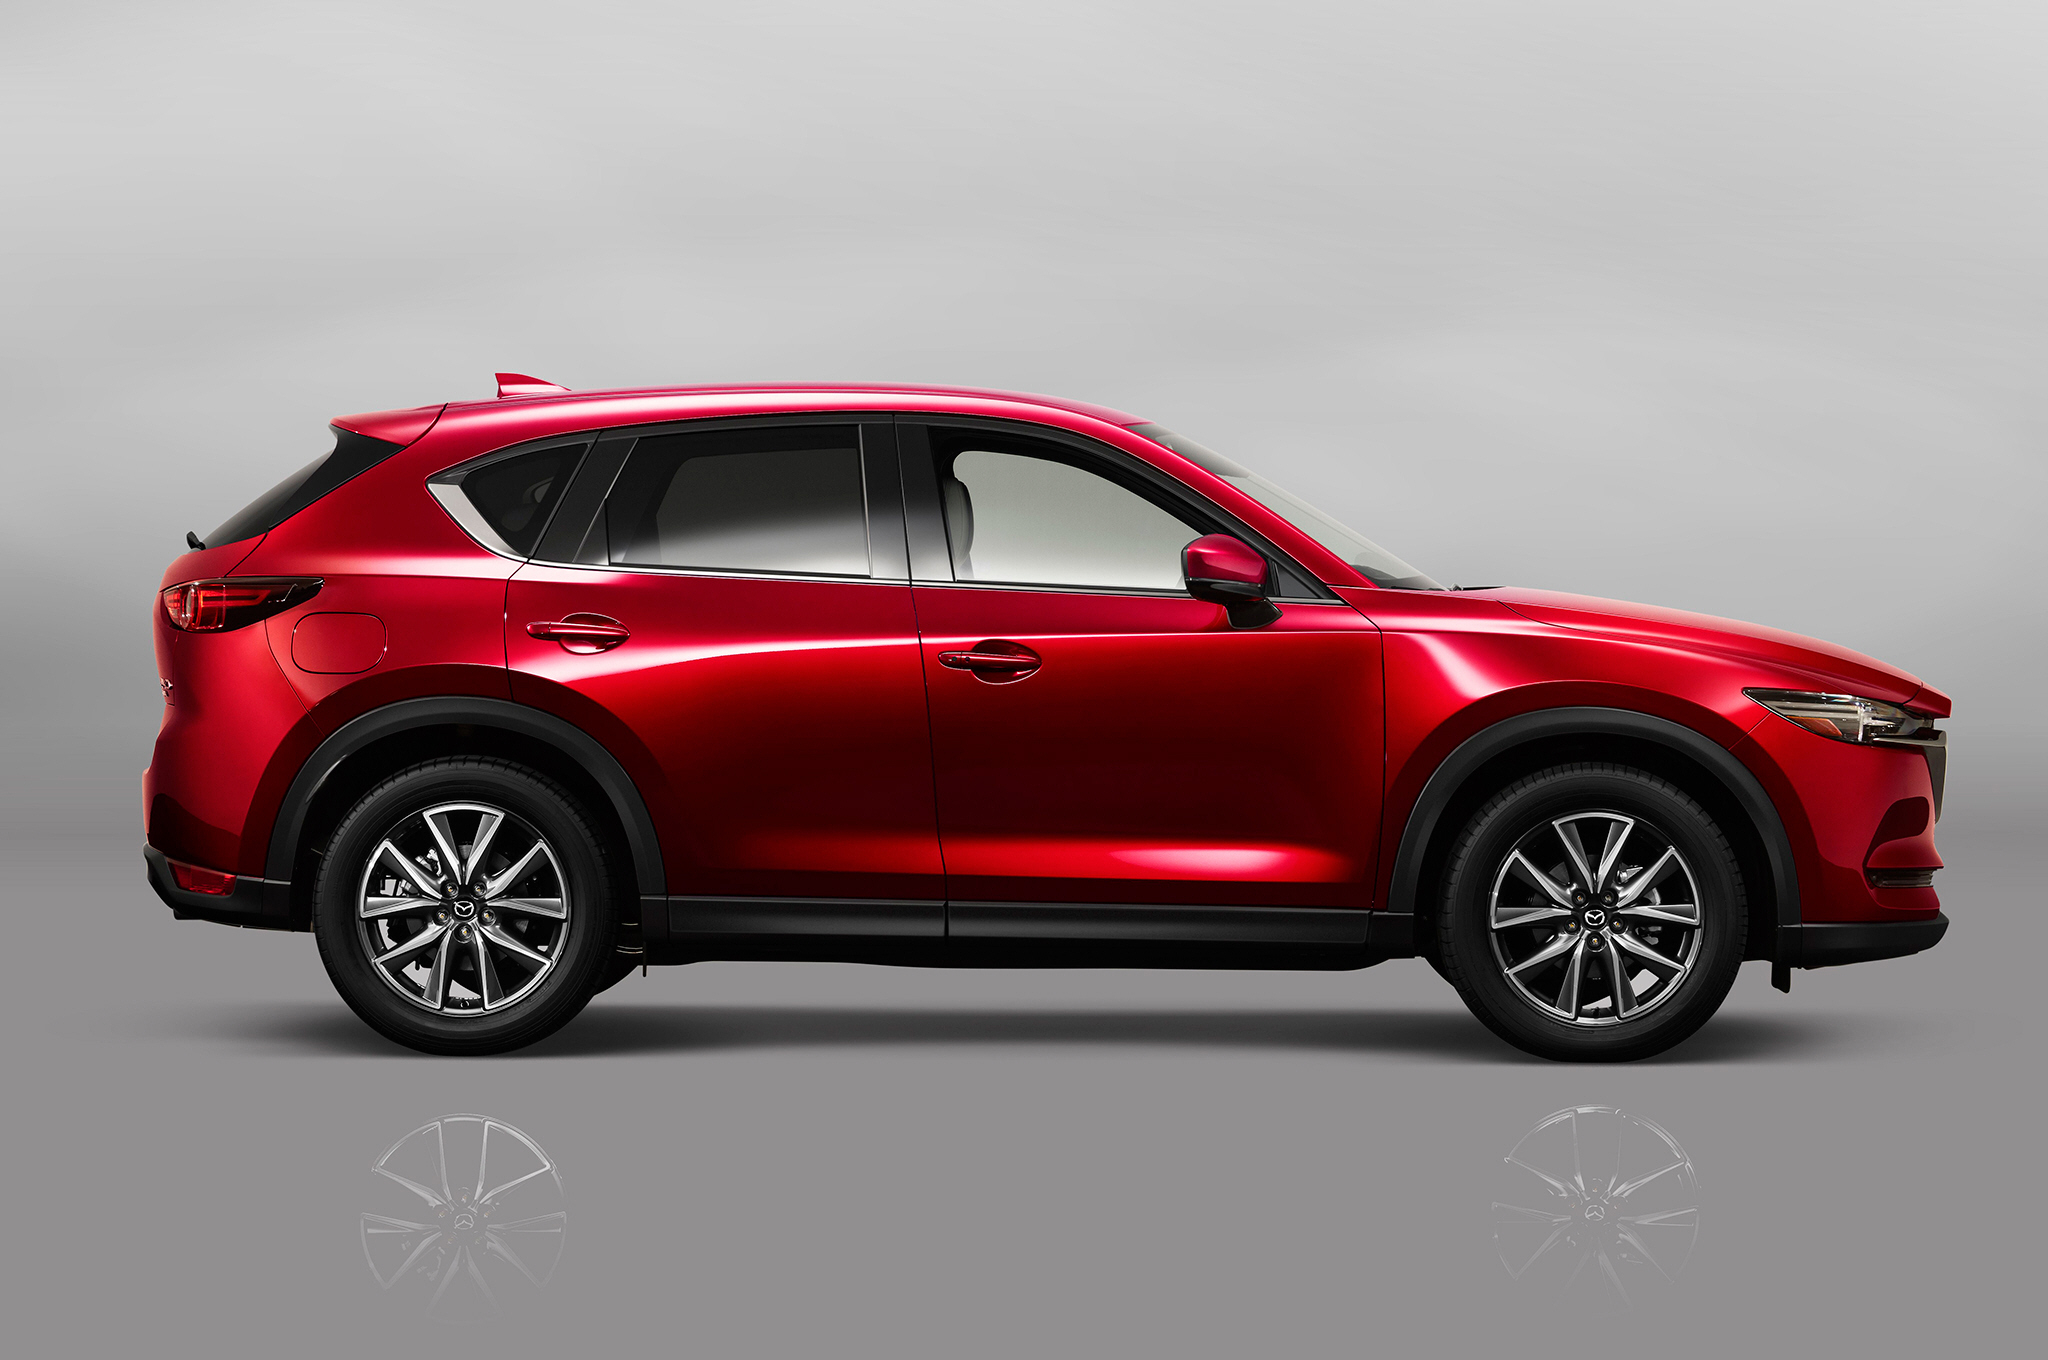 2021 mazda cx-5 facelift changes and rumors - future suvs